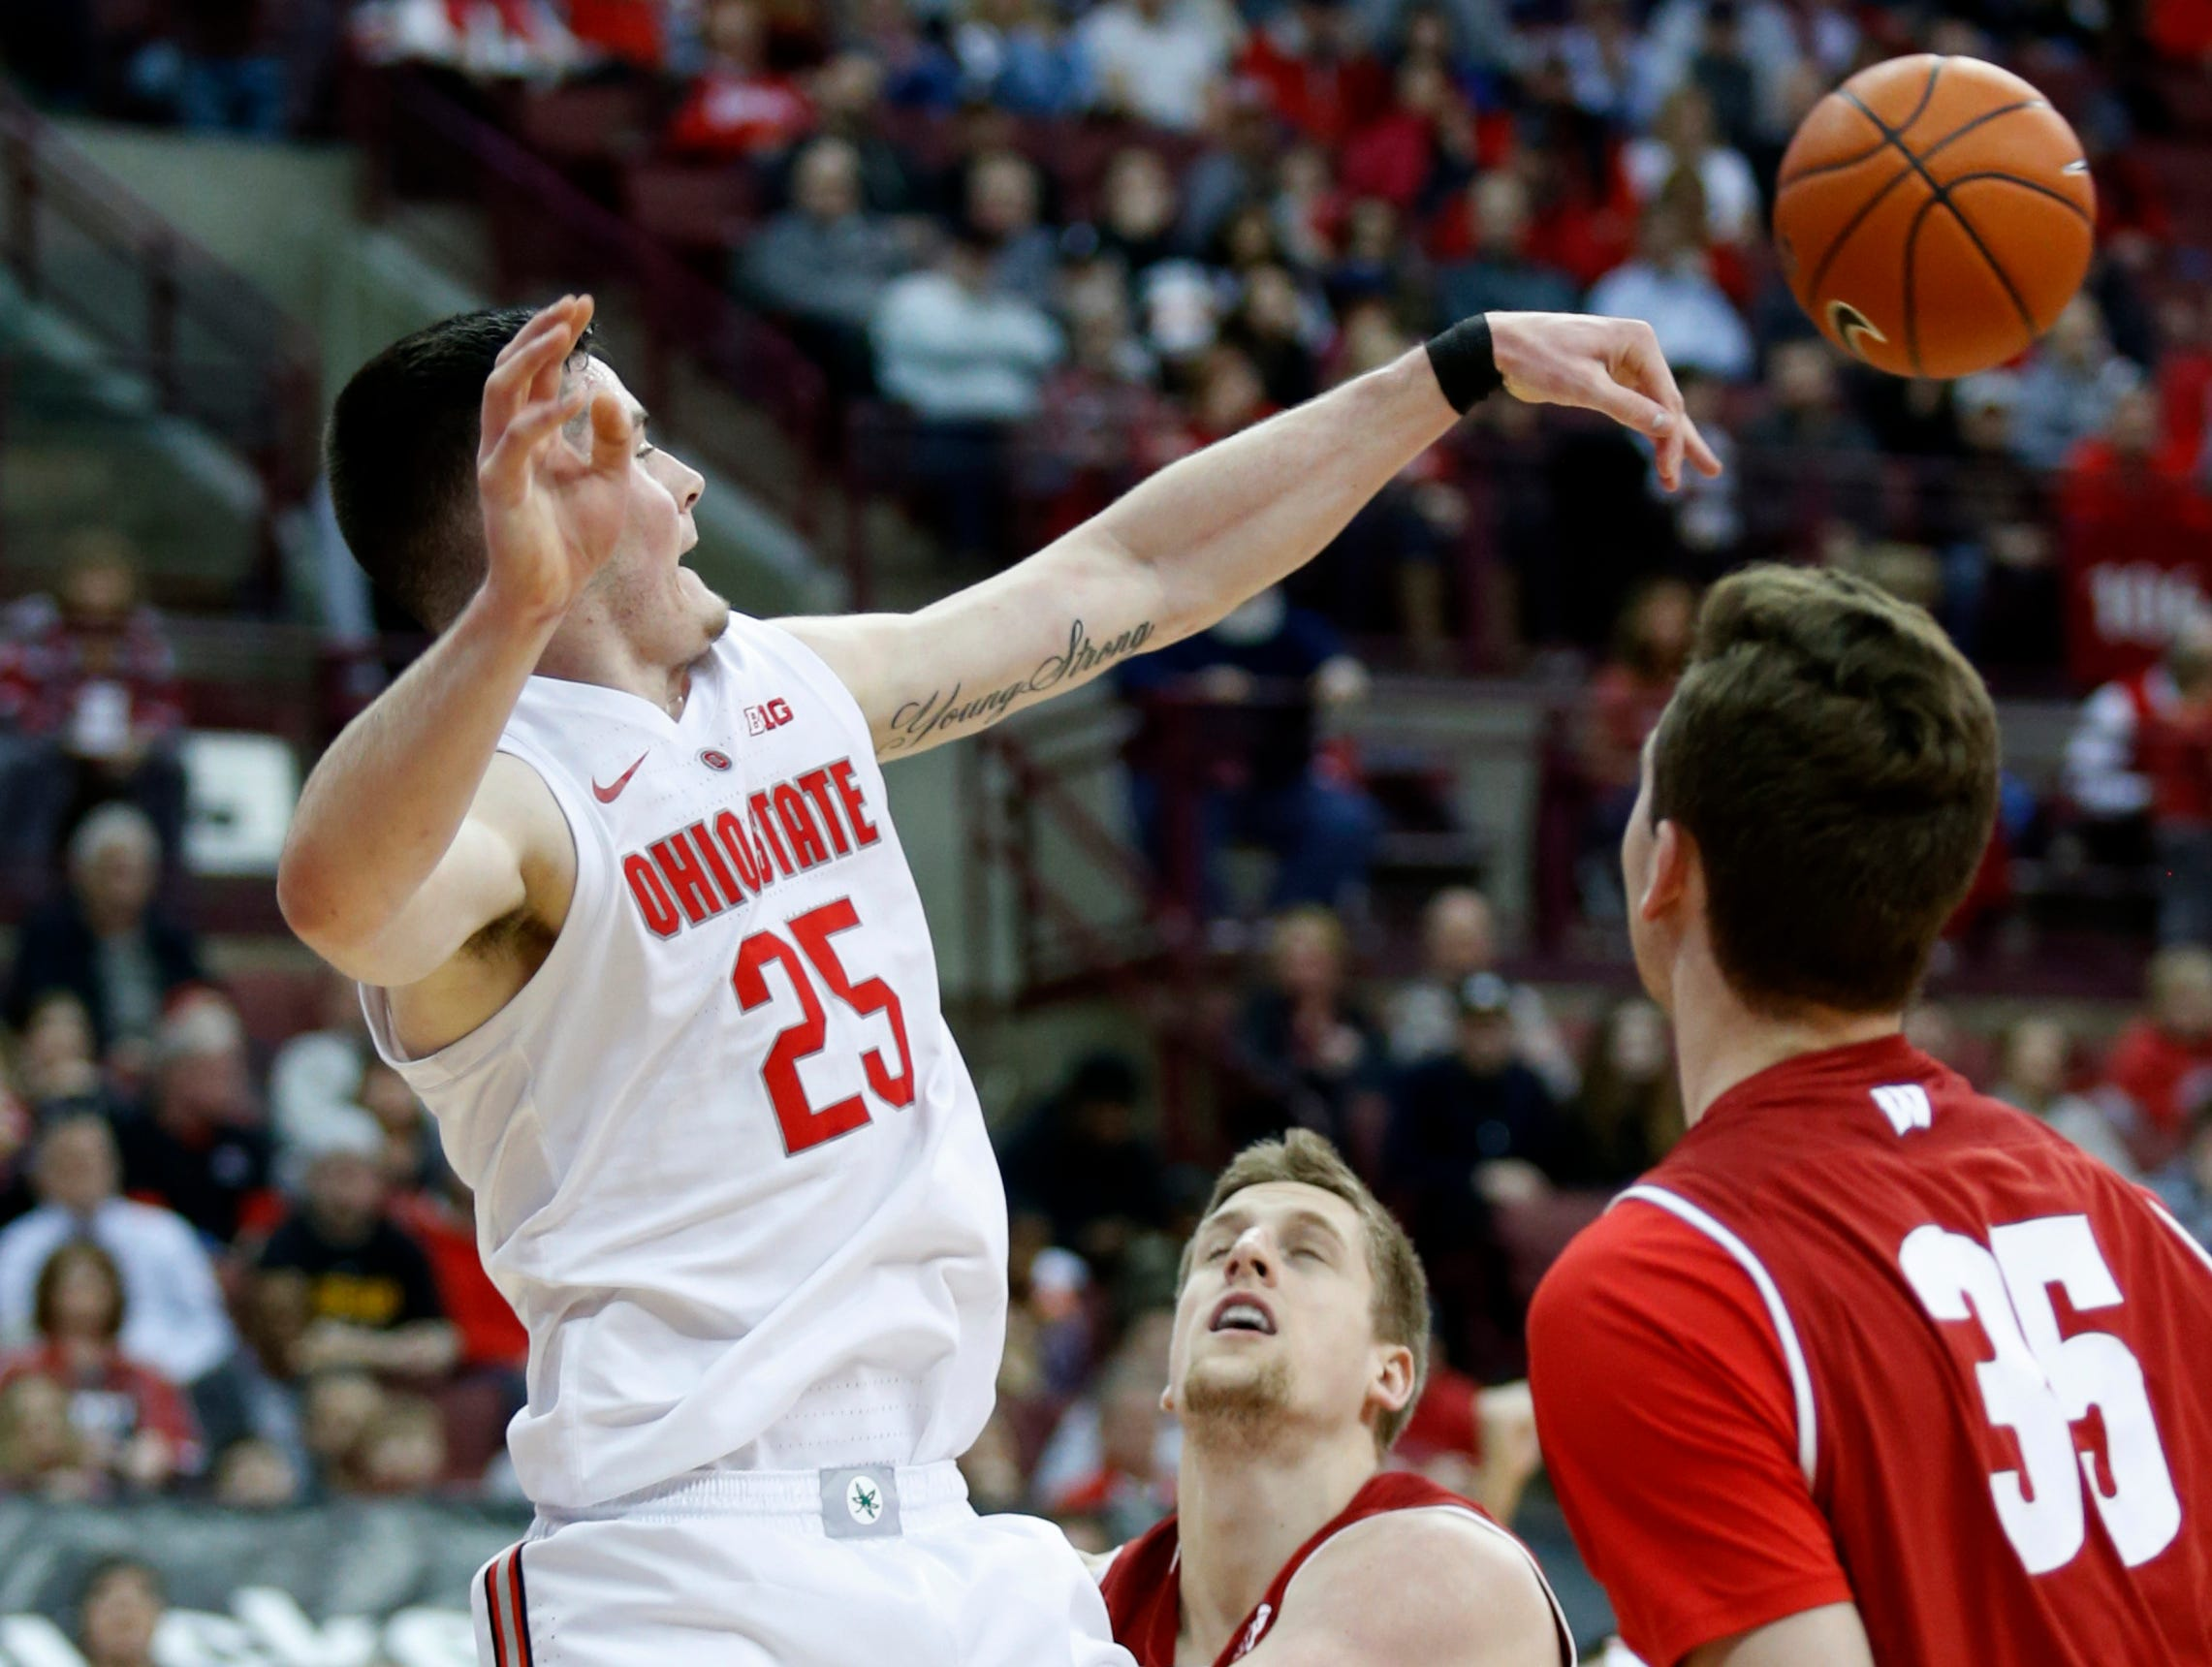 9. Ohio State (18-13, 8-12): The season couldn't have ended much worse for the Buckeyes as they dropped three in a row while Kaleb Wesson sat out serving a suspension. There's no indication if he'll be back for the conference tournament, but if the Buckeyes expect to keep their NCAA Tournament bubble from bursting, they'll likely need a win or two in Chicago. Getting Wesson back would go a long way toward meeting that goal. Last week: 6.